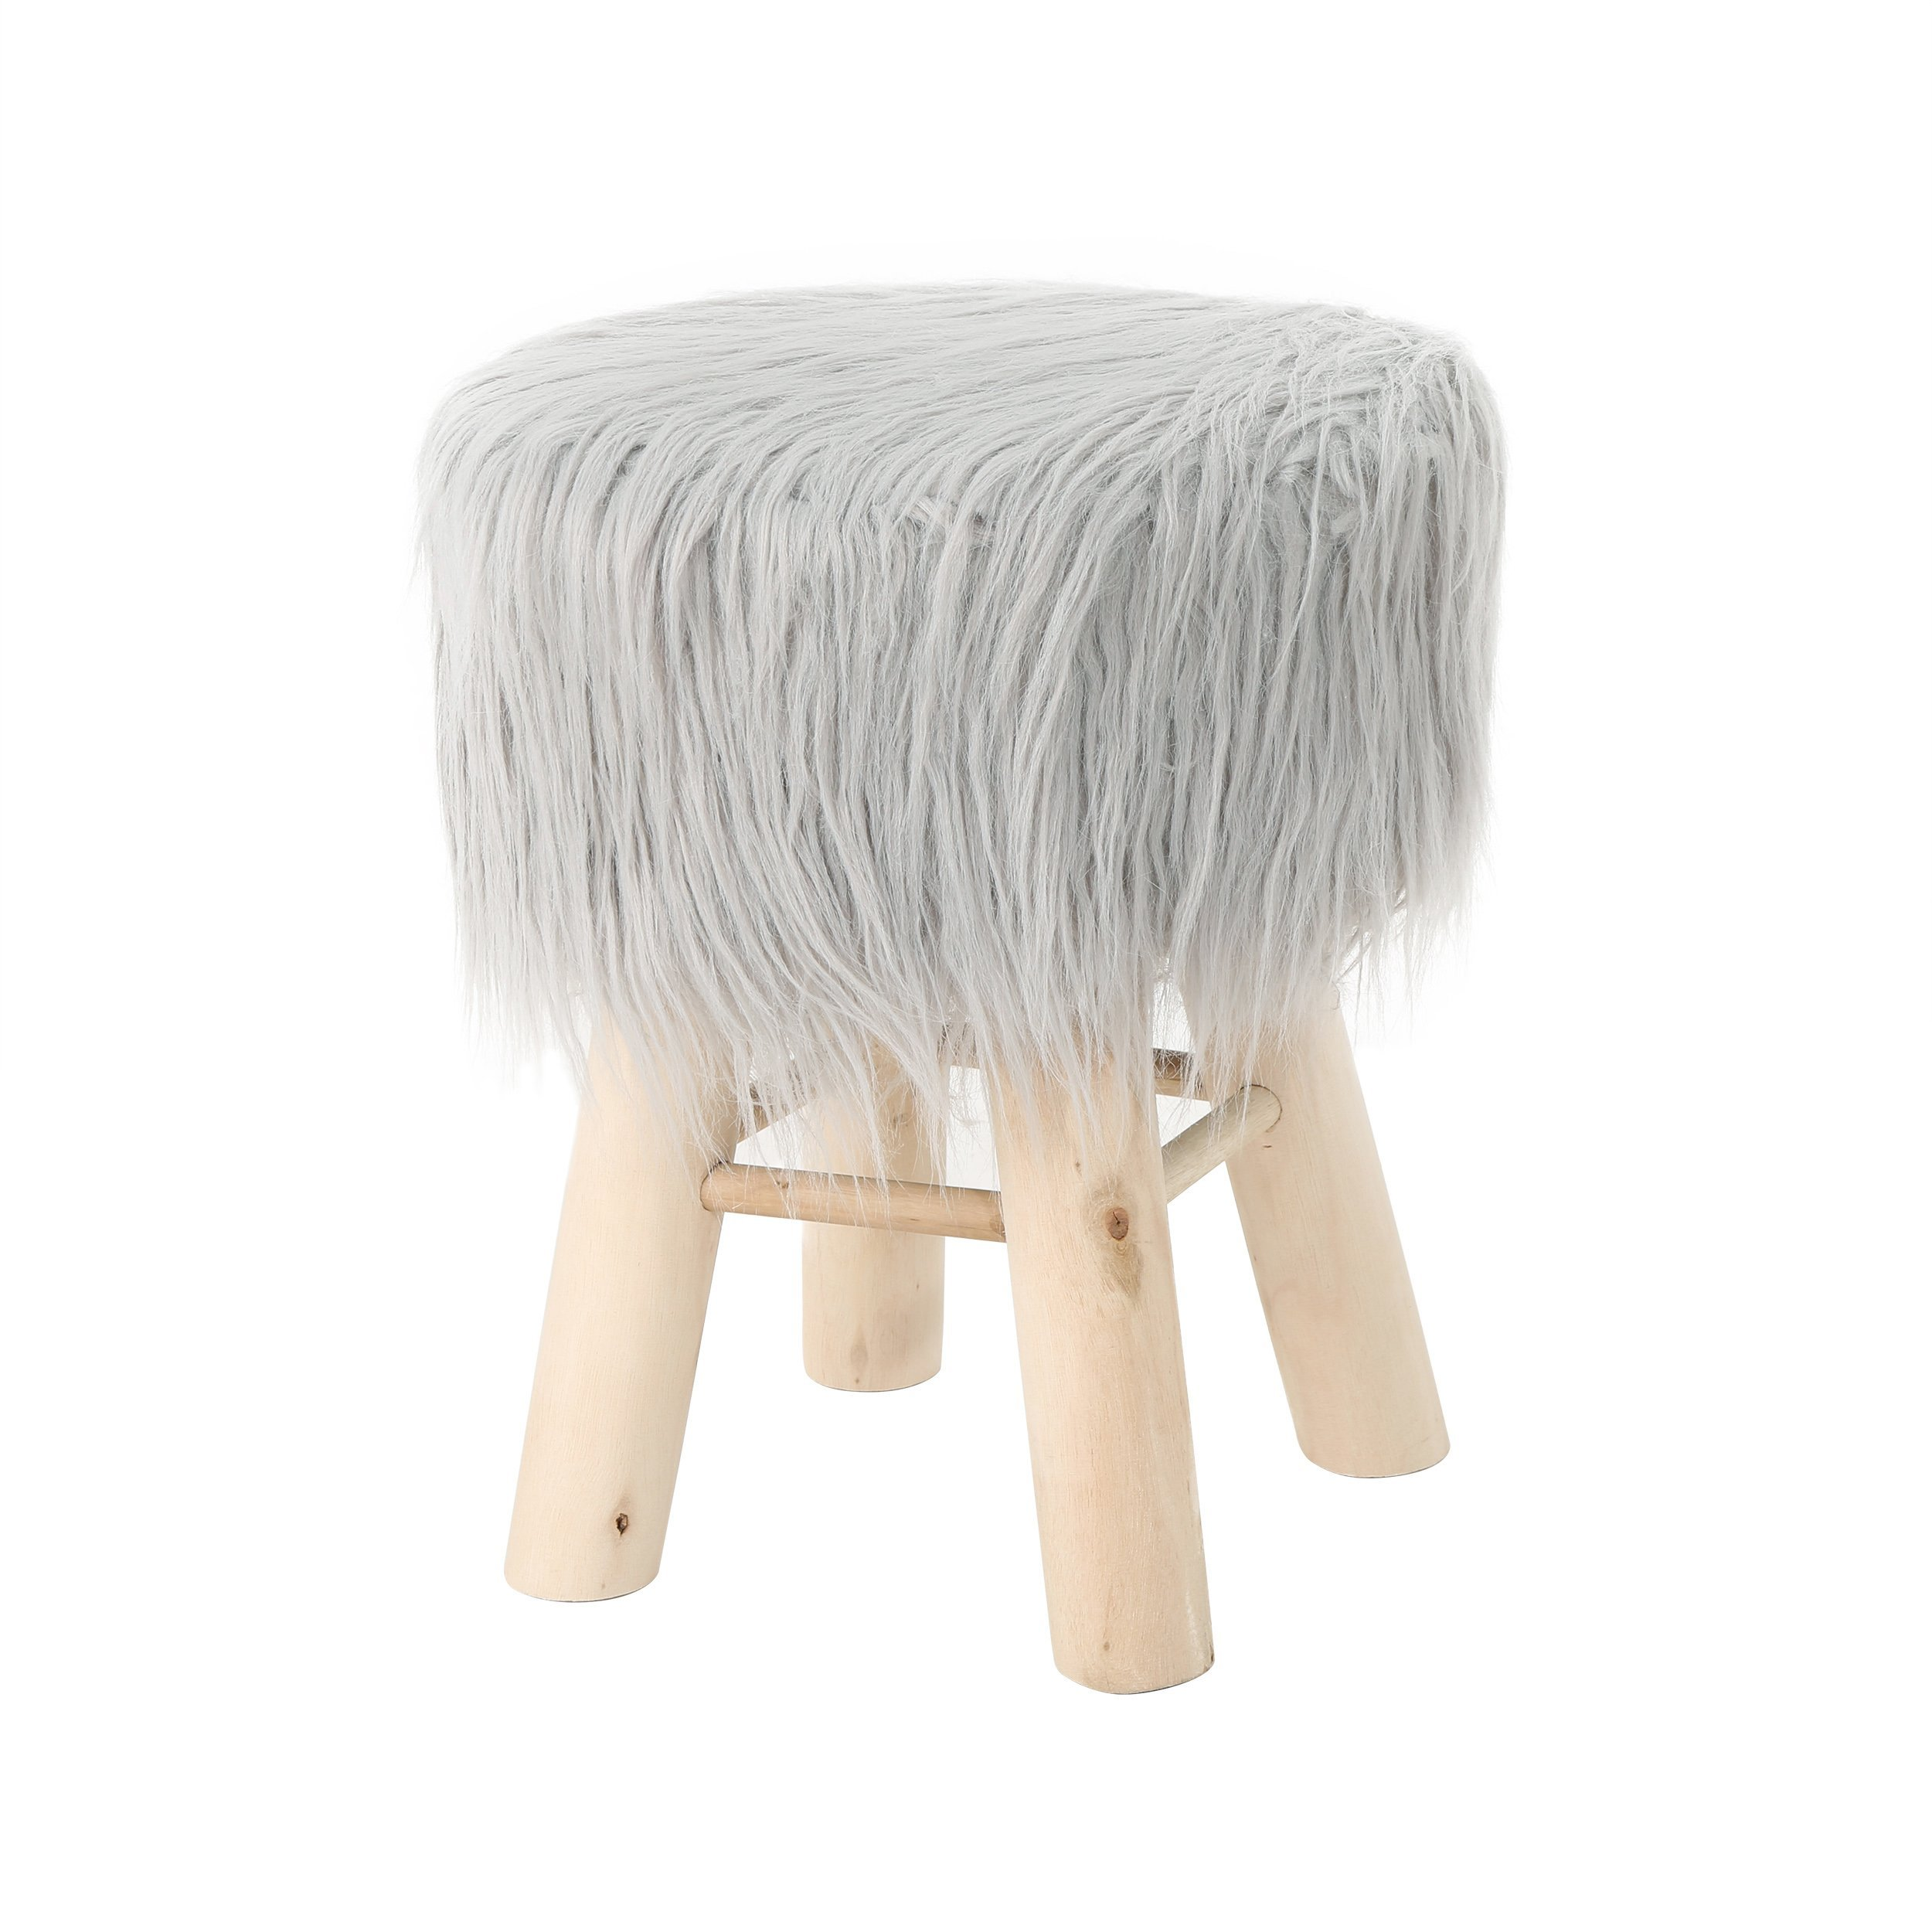 Great Deal Furniture 305729 Lang Stool with Furry Plush, Silver, Natural by Great Deal Furniture